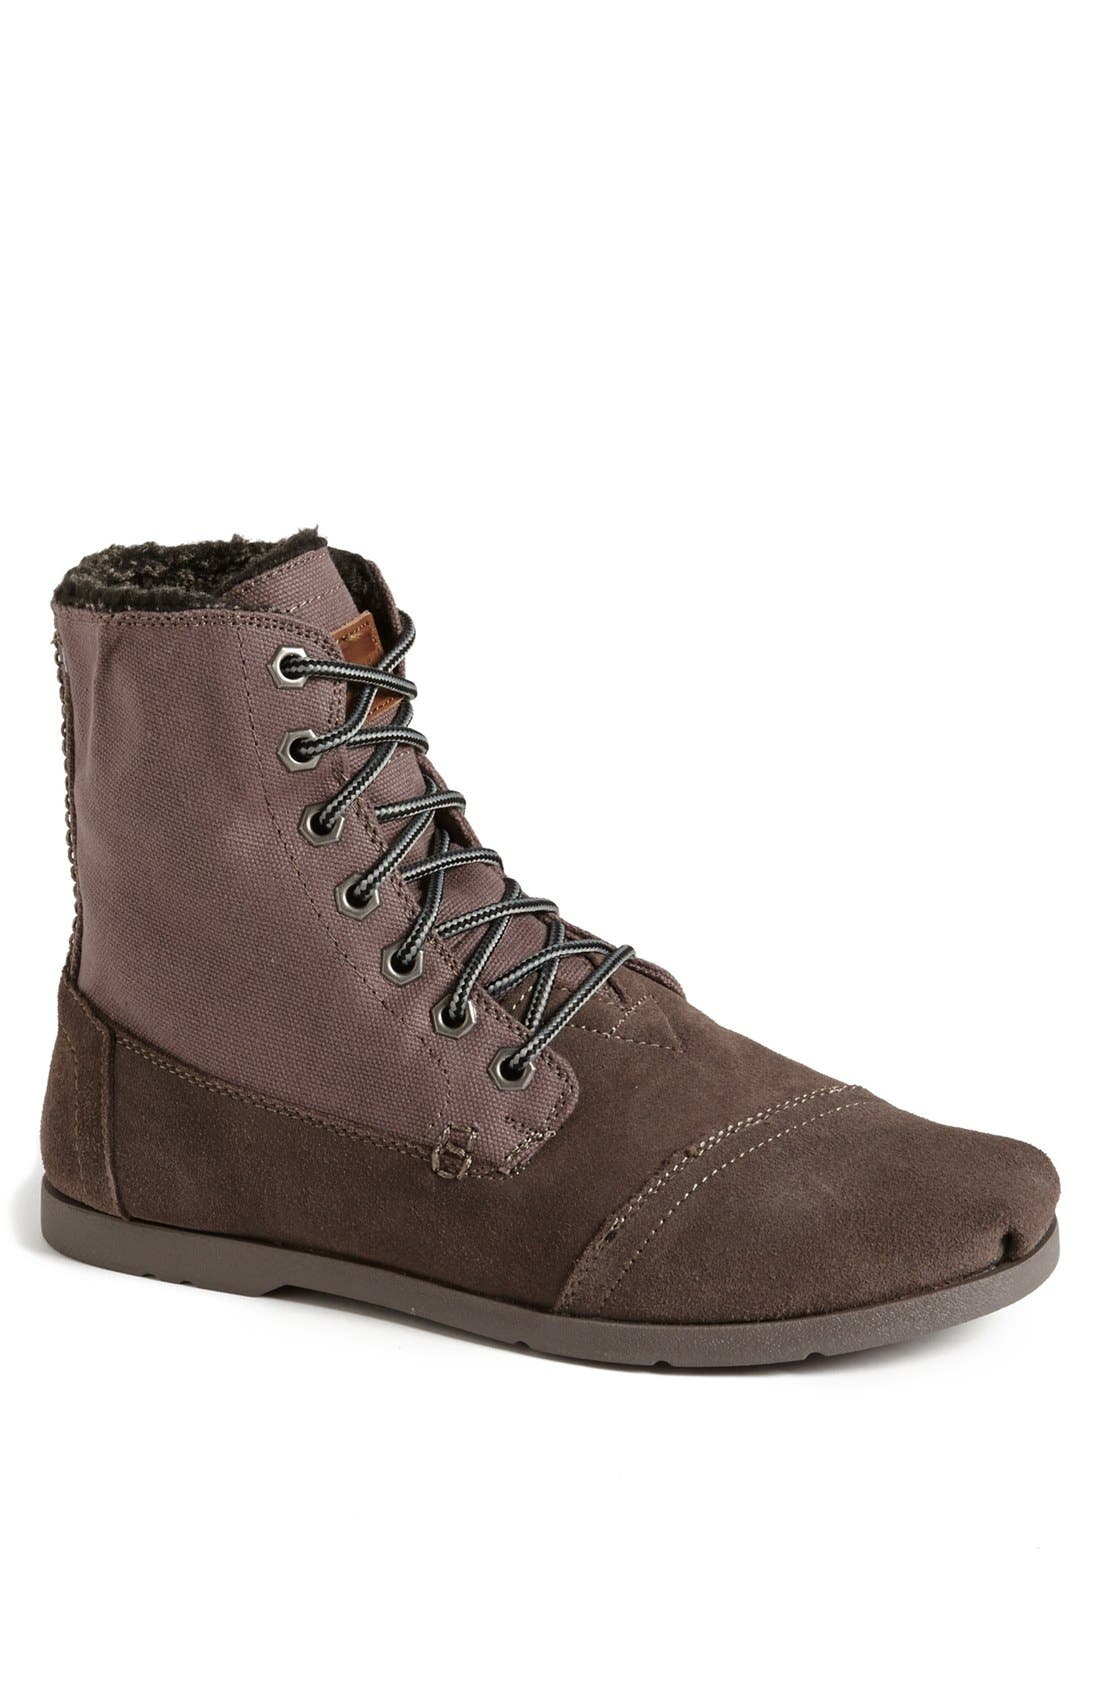 Alternate Image 1 Selected - TOMS Suede Utility Boot (Men)